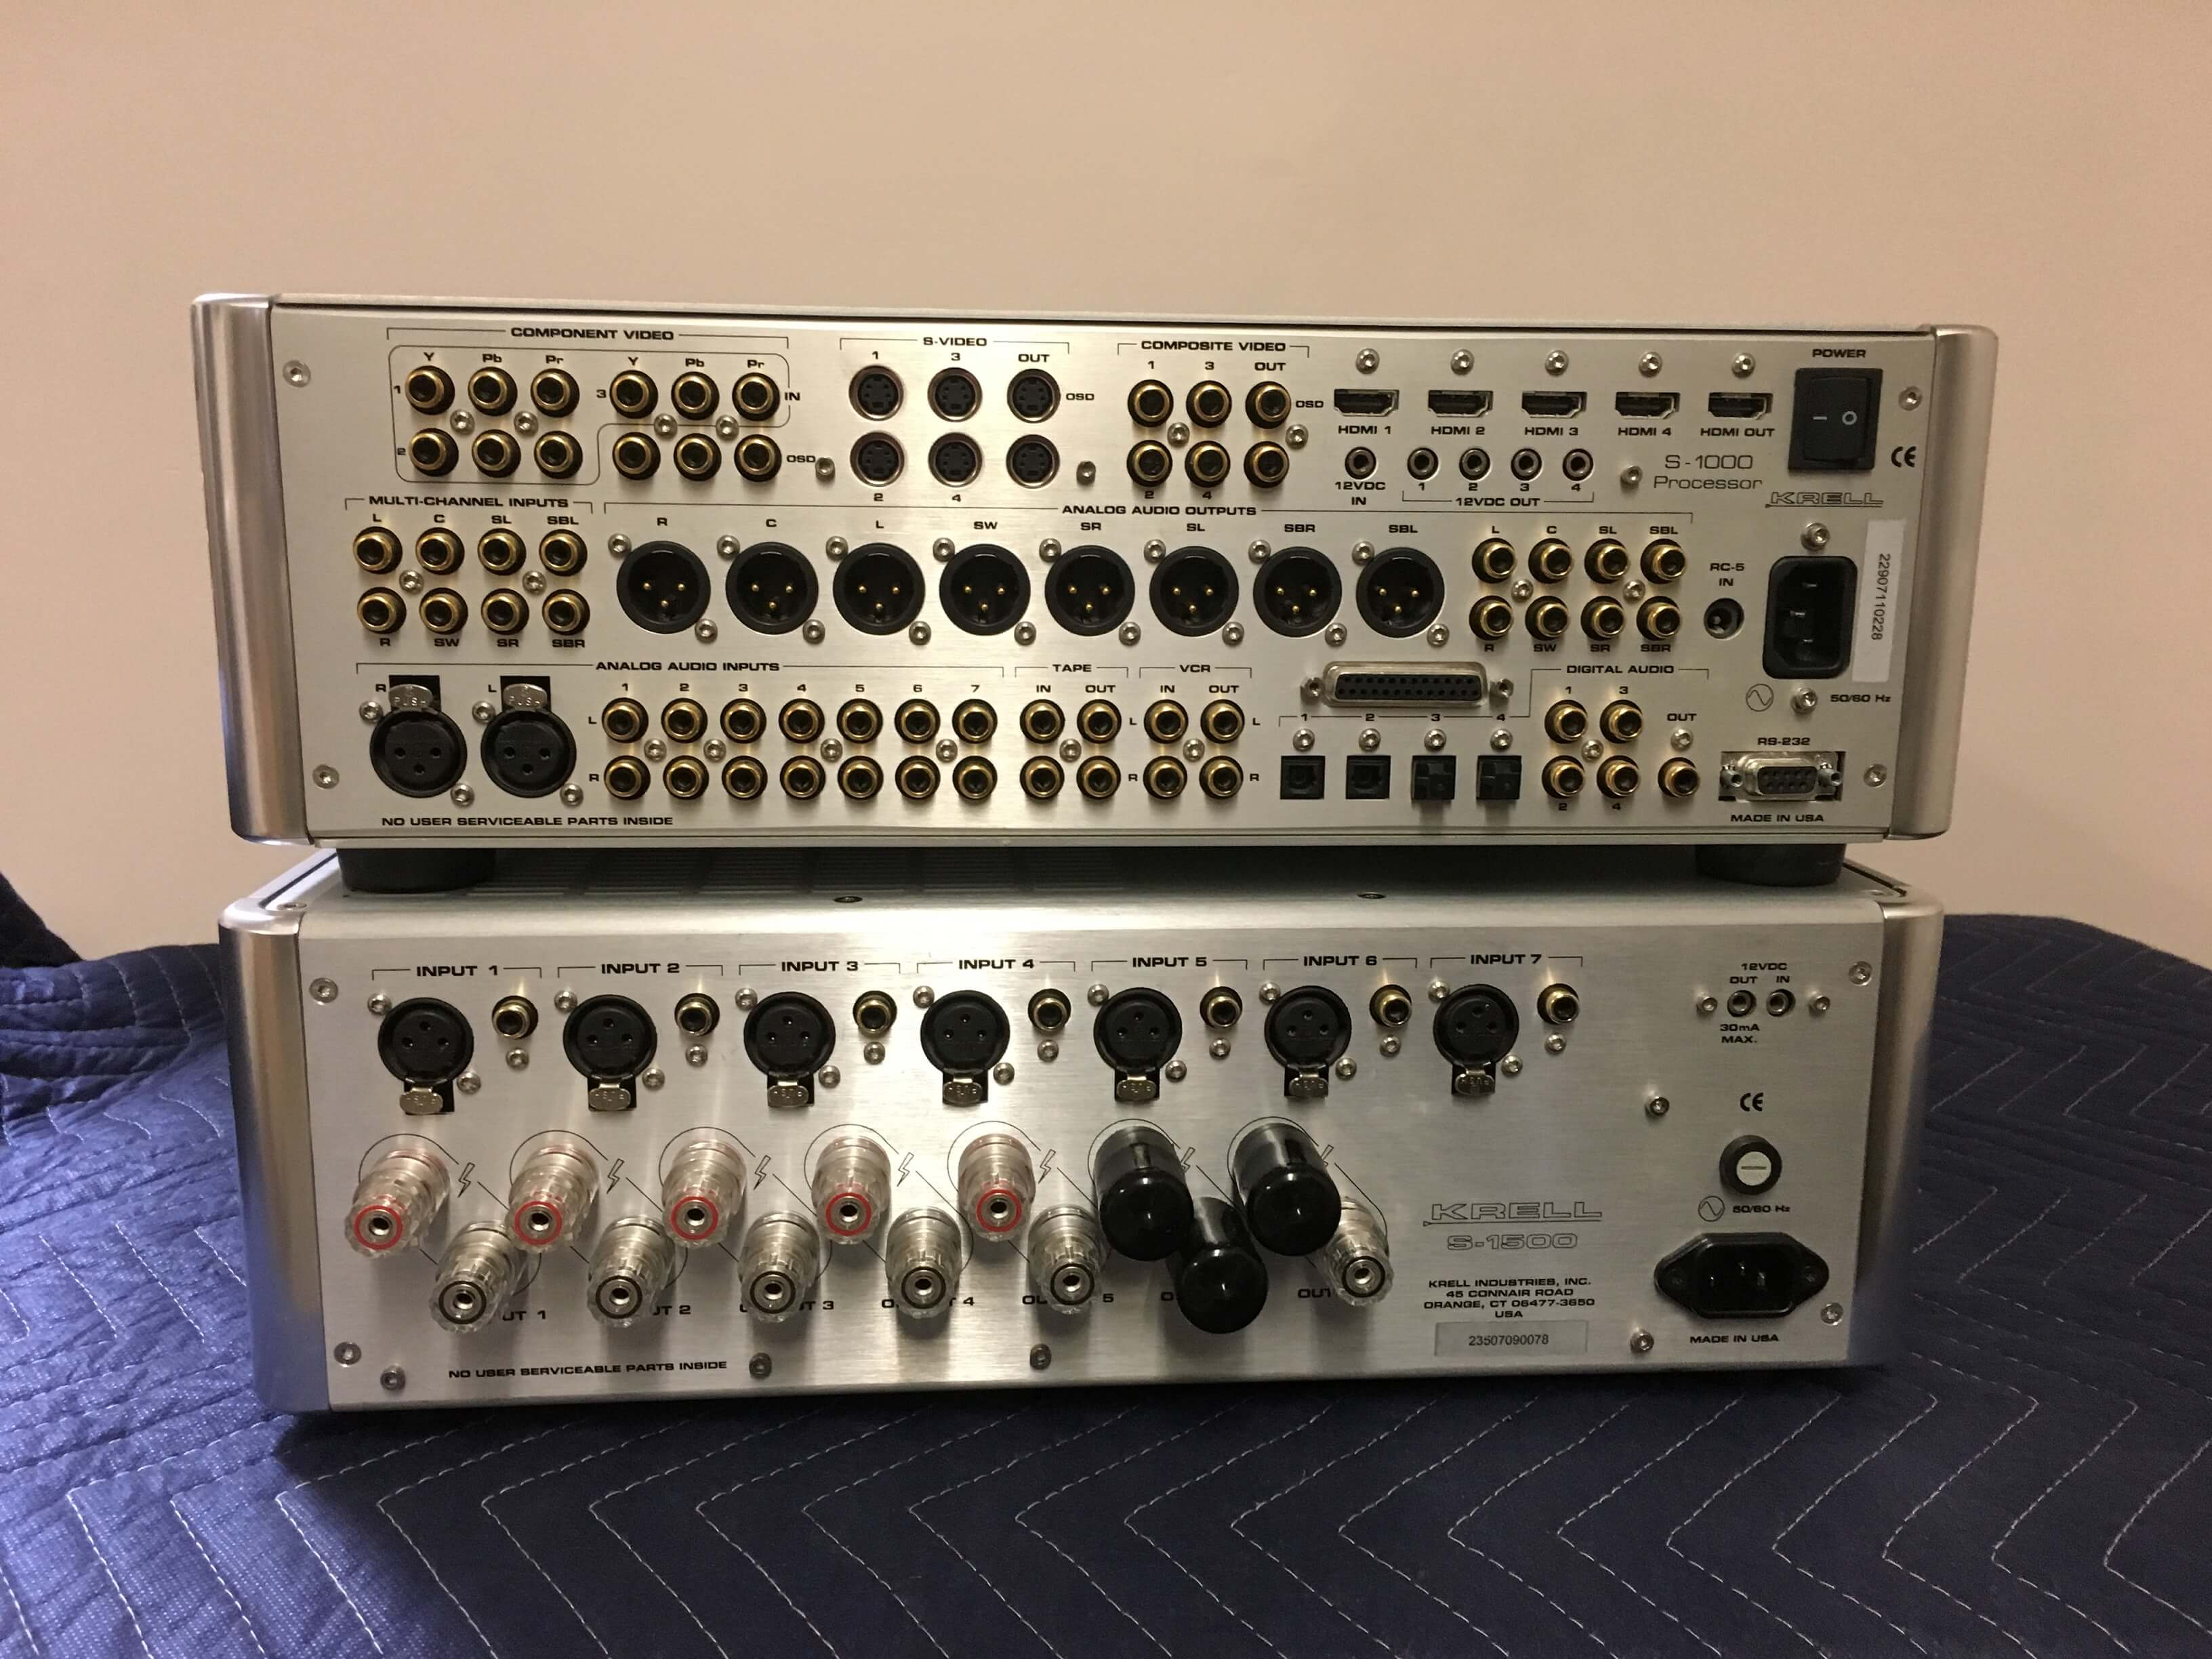 Krell S1000 HDMI 5 channel preamp-processor & S1500 amplifier